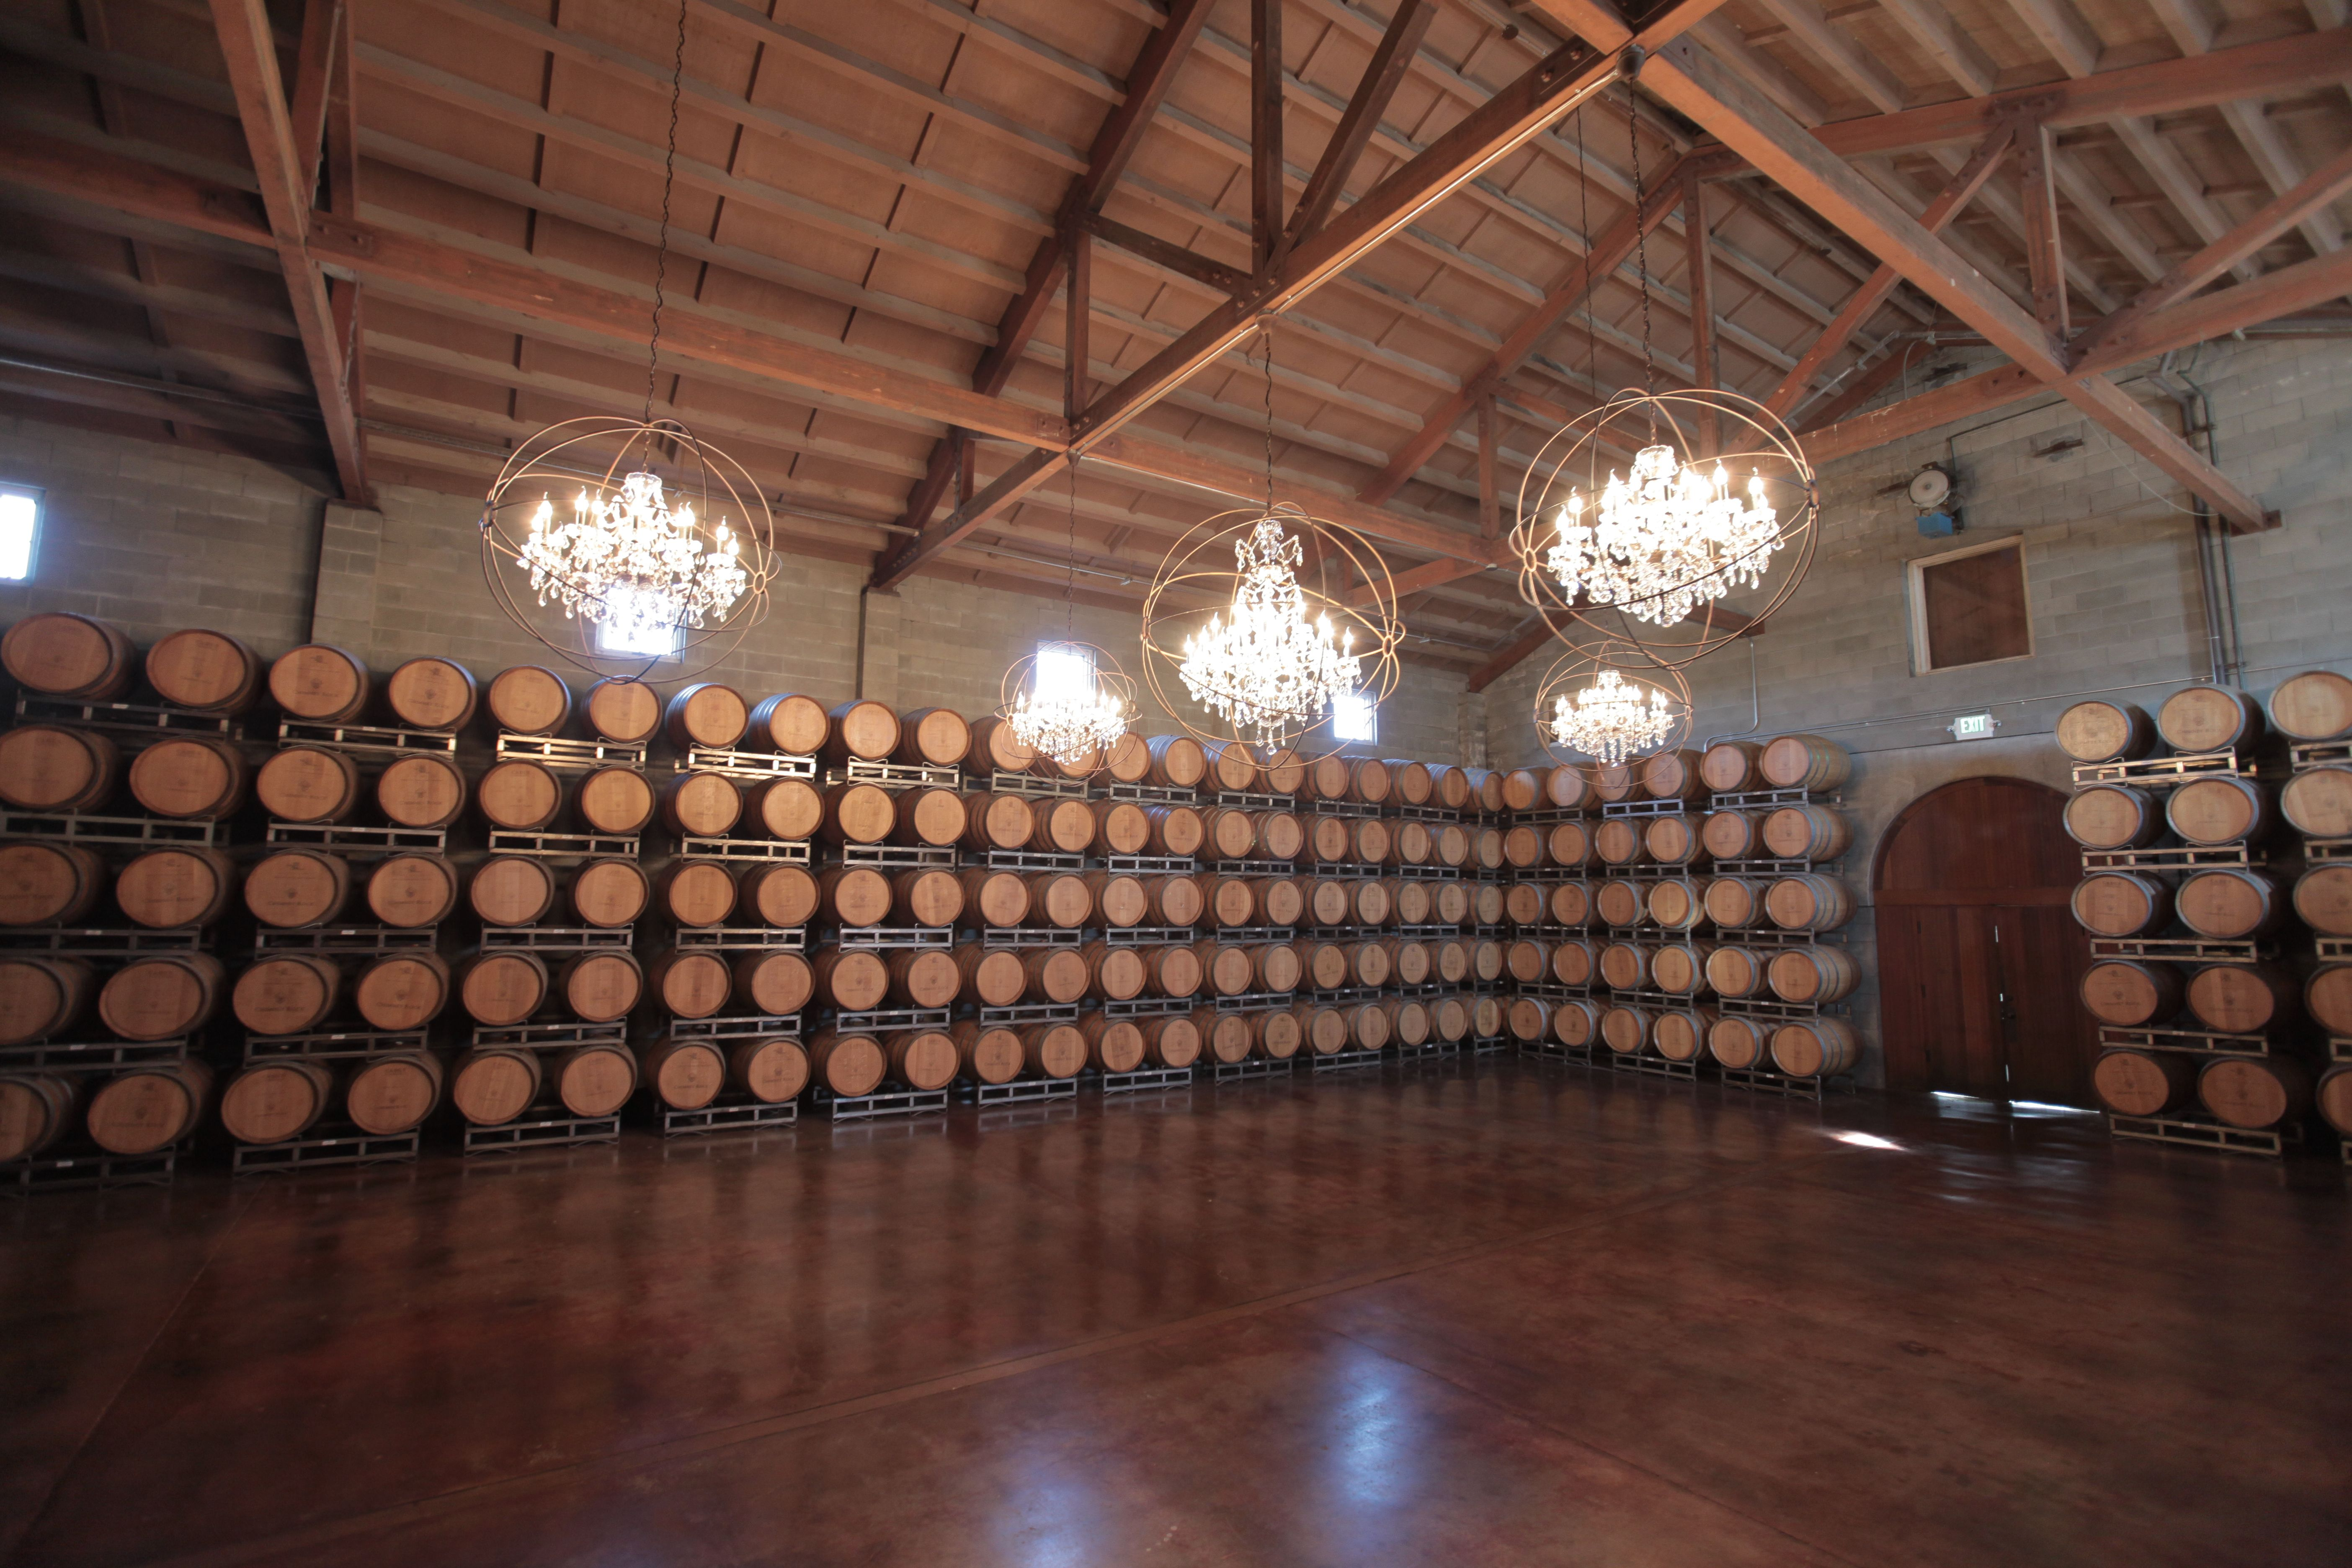 The barrel room at Chimney Rock is a beautiful venue for a special ...